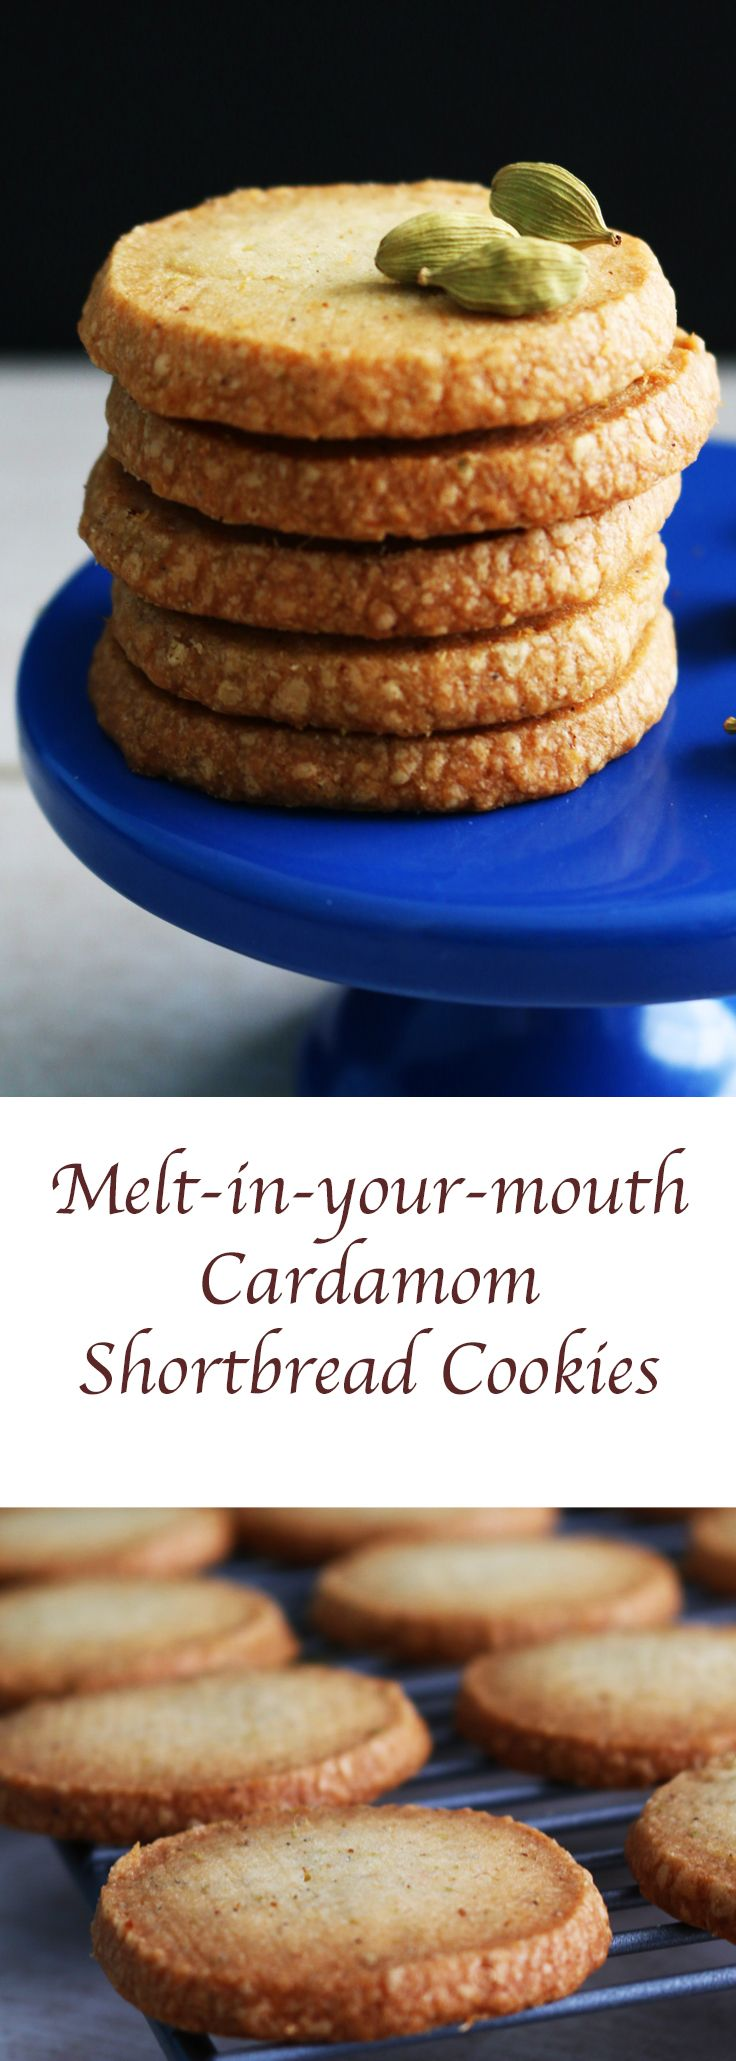 3/4 cup all purpose flour  1 tablespoon cardamom powder, refer notes  1/4 teaspoon salt  1 stick unsalted butter (1/2 cup), room temperature  1/4 cup + 1 tablespoon confectioners sugar